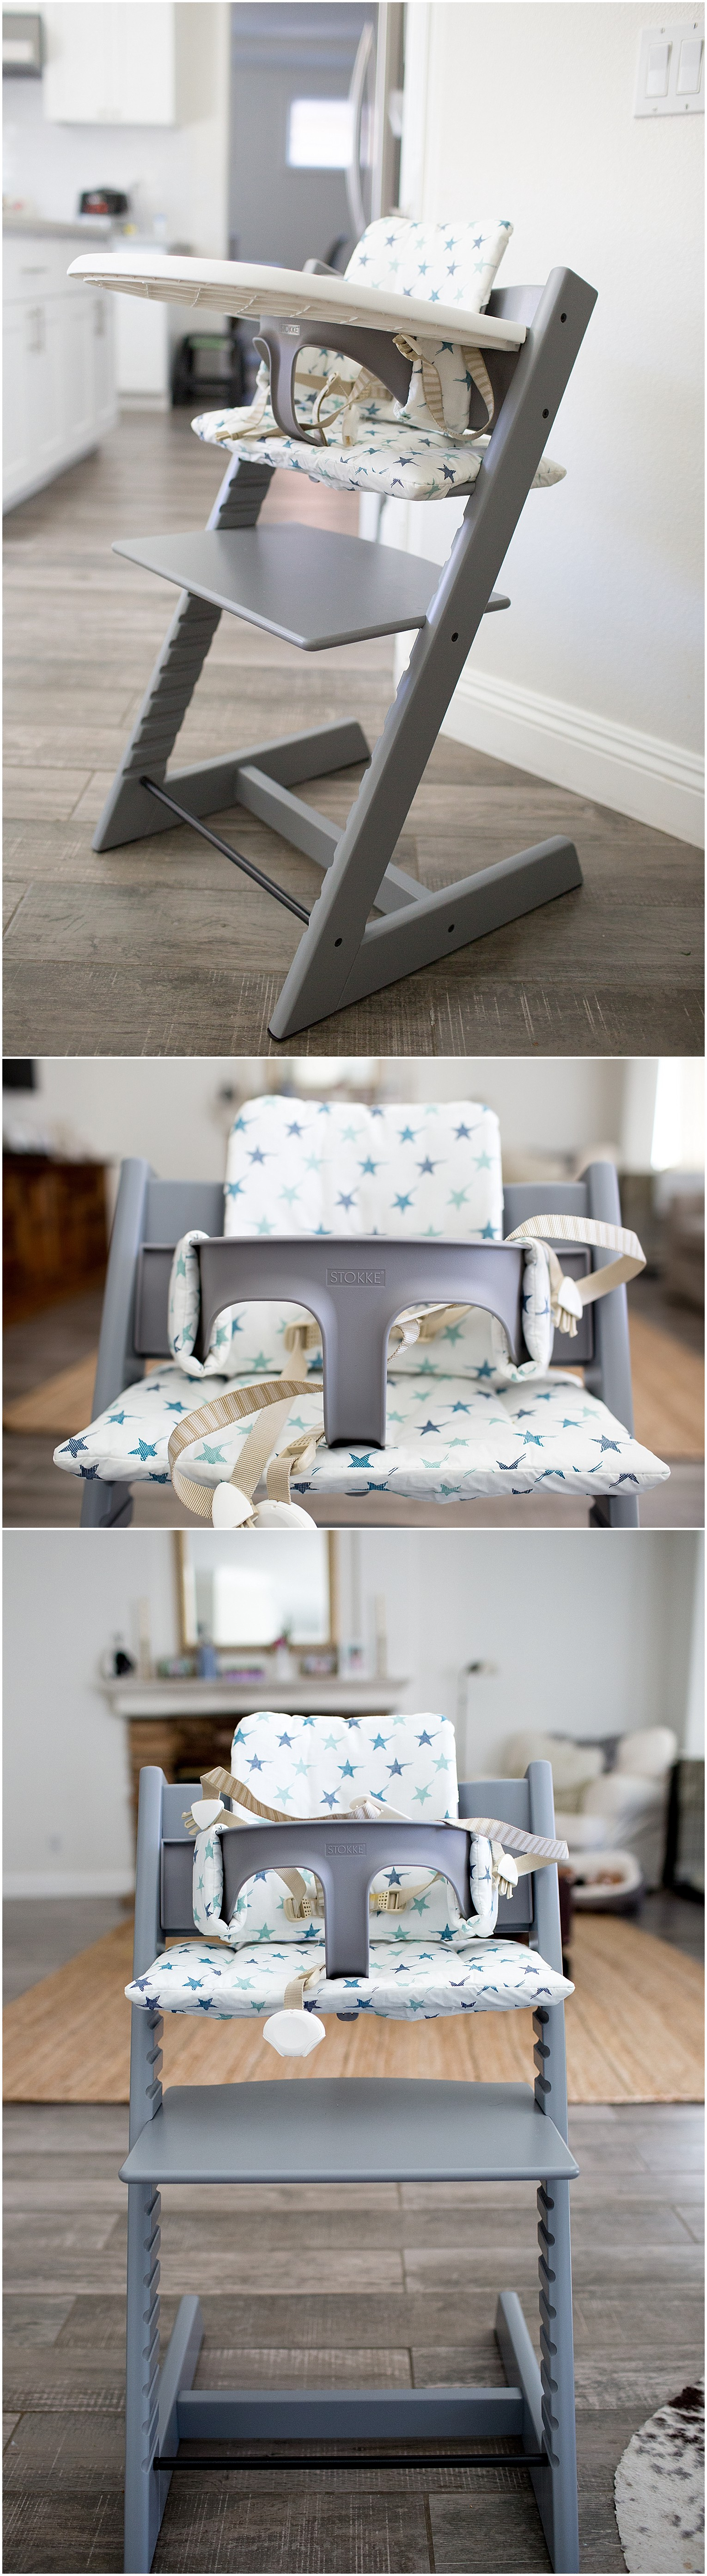 stokke-tripp-trapp-high-chair-gray